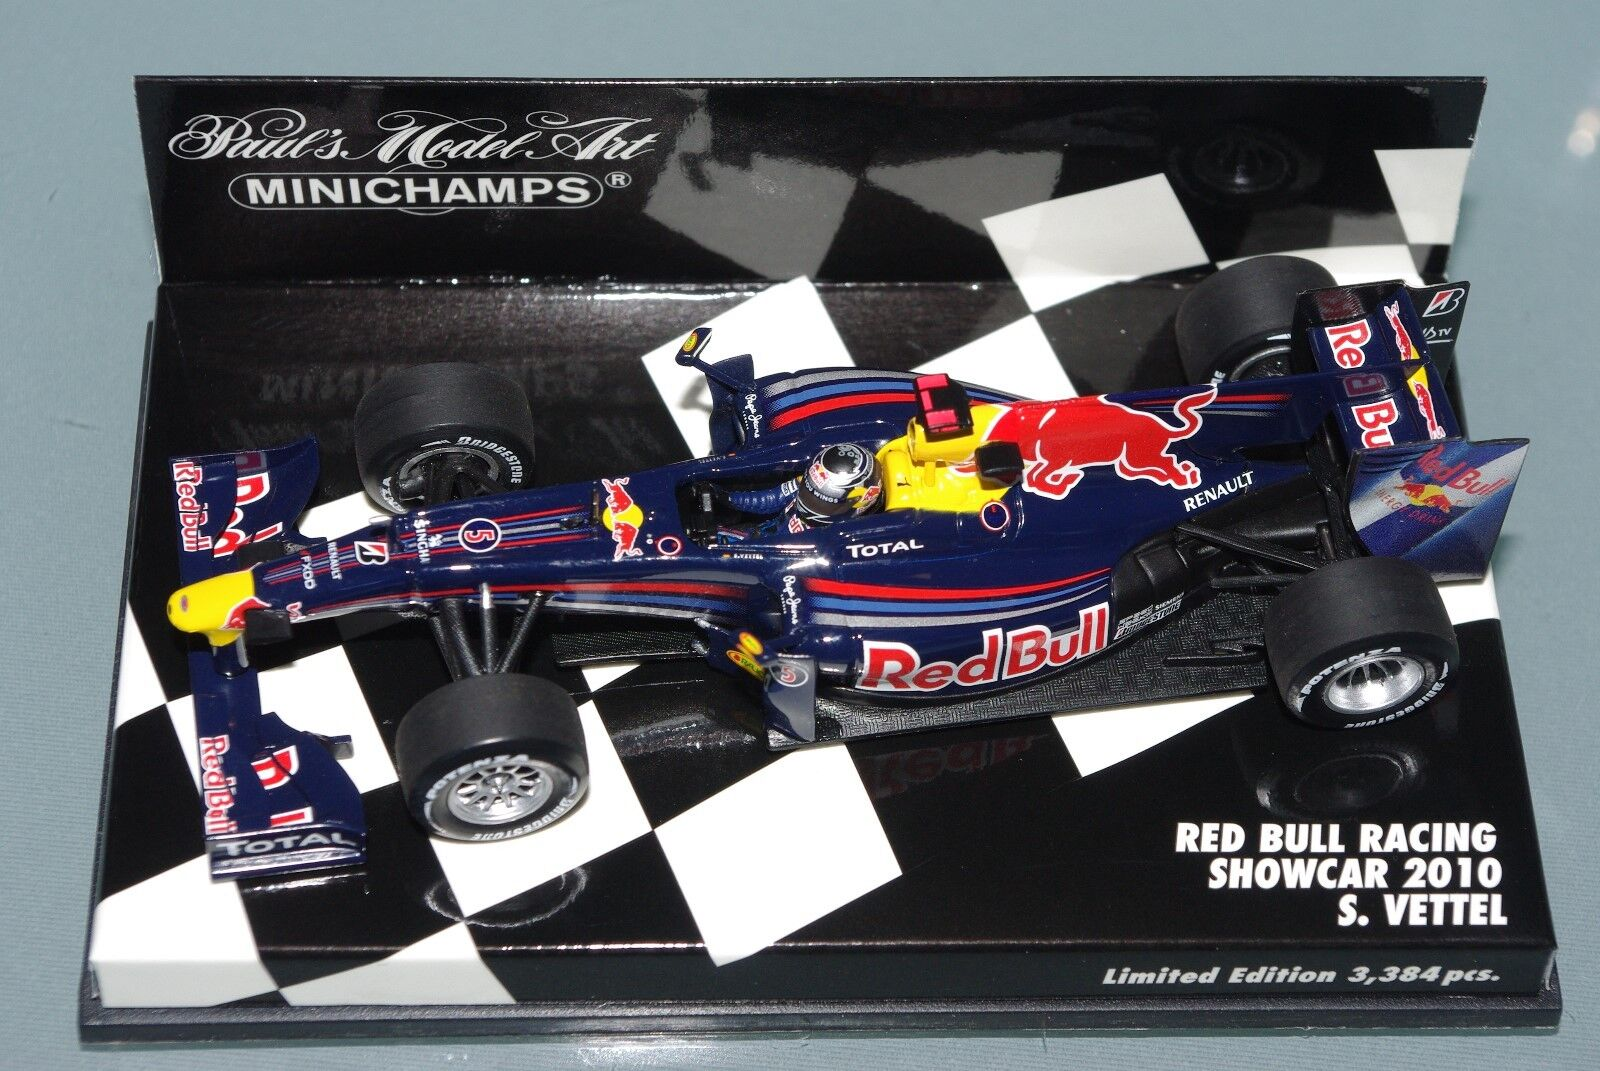 Minichamps F1 1 43 RED BULL RACING SHOWCAR 2010 SEBASTIAN VETTEL - L.E. 3384pcs